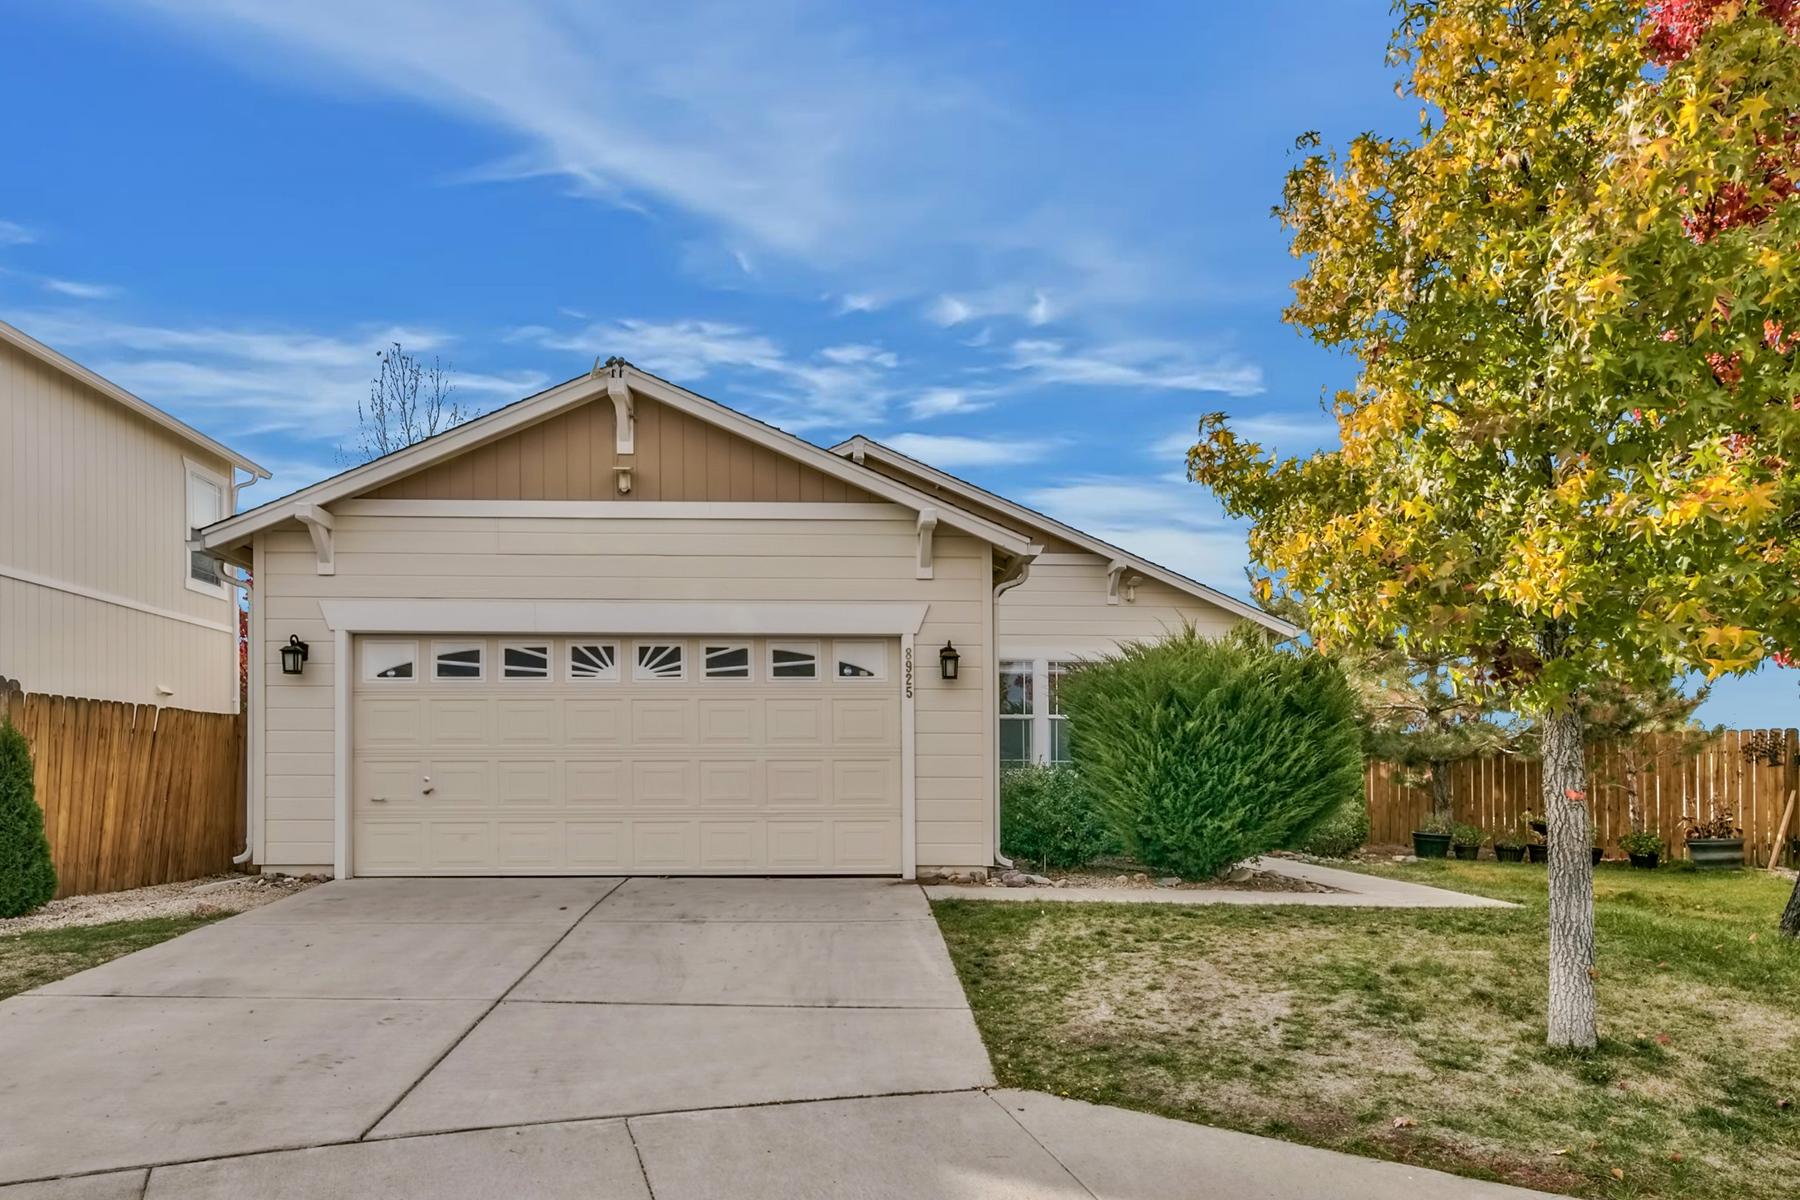 Single Family Home for Active at 8925 Griffon Ct., Reno, Nevada 89506 8925 Griffon Court Reno, Nevada 89506 United States